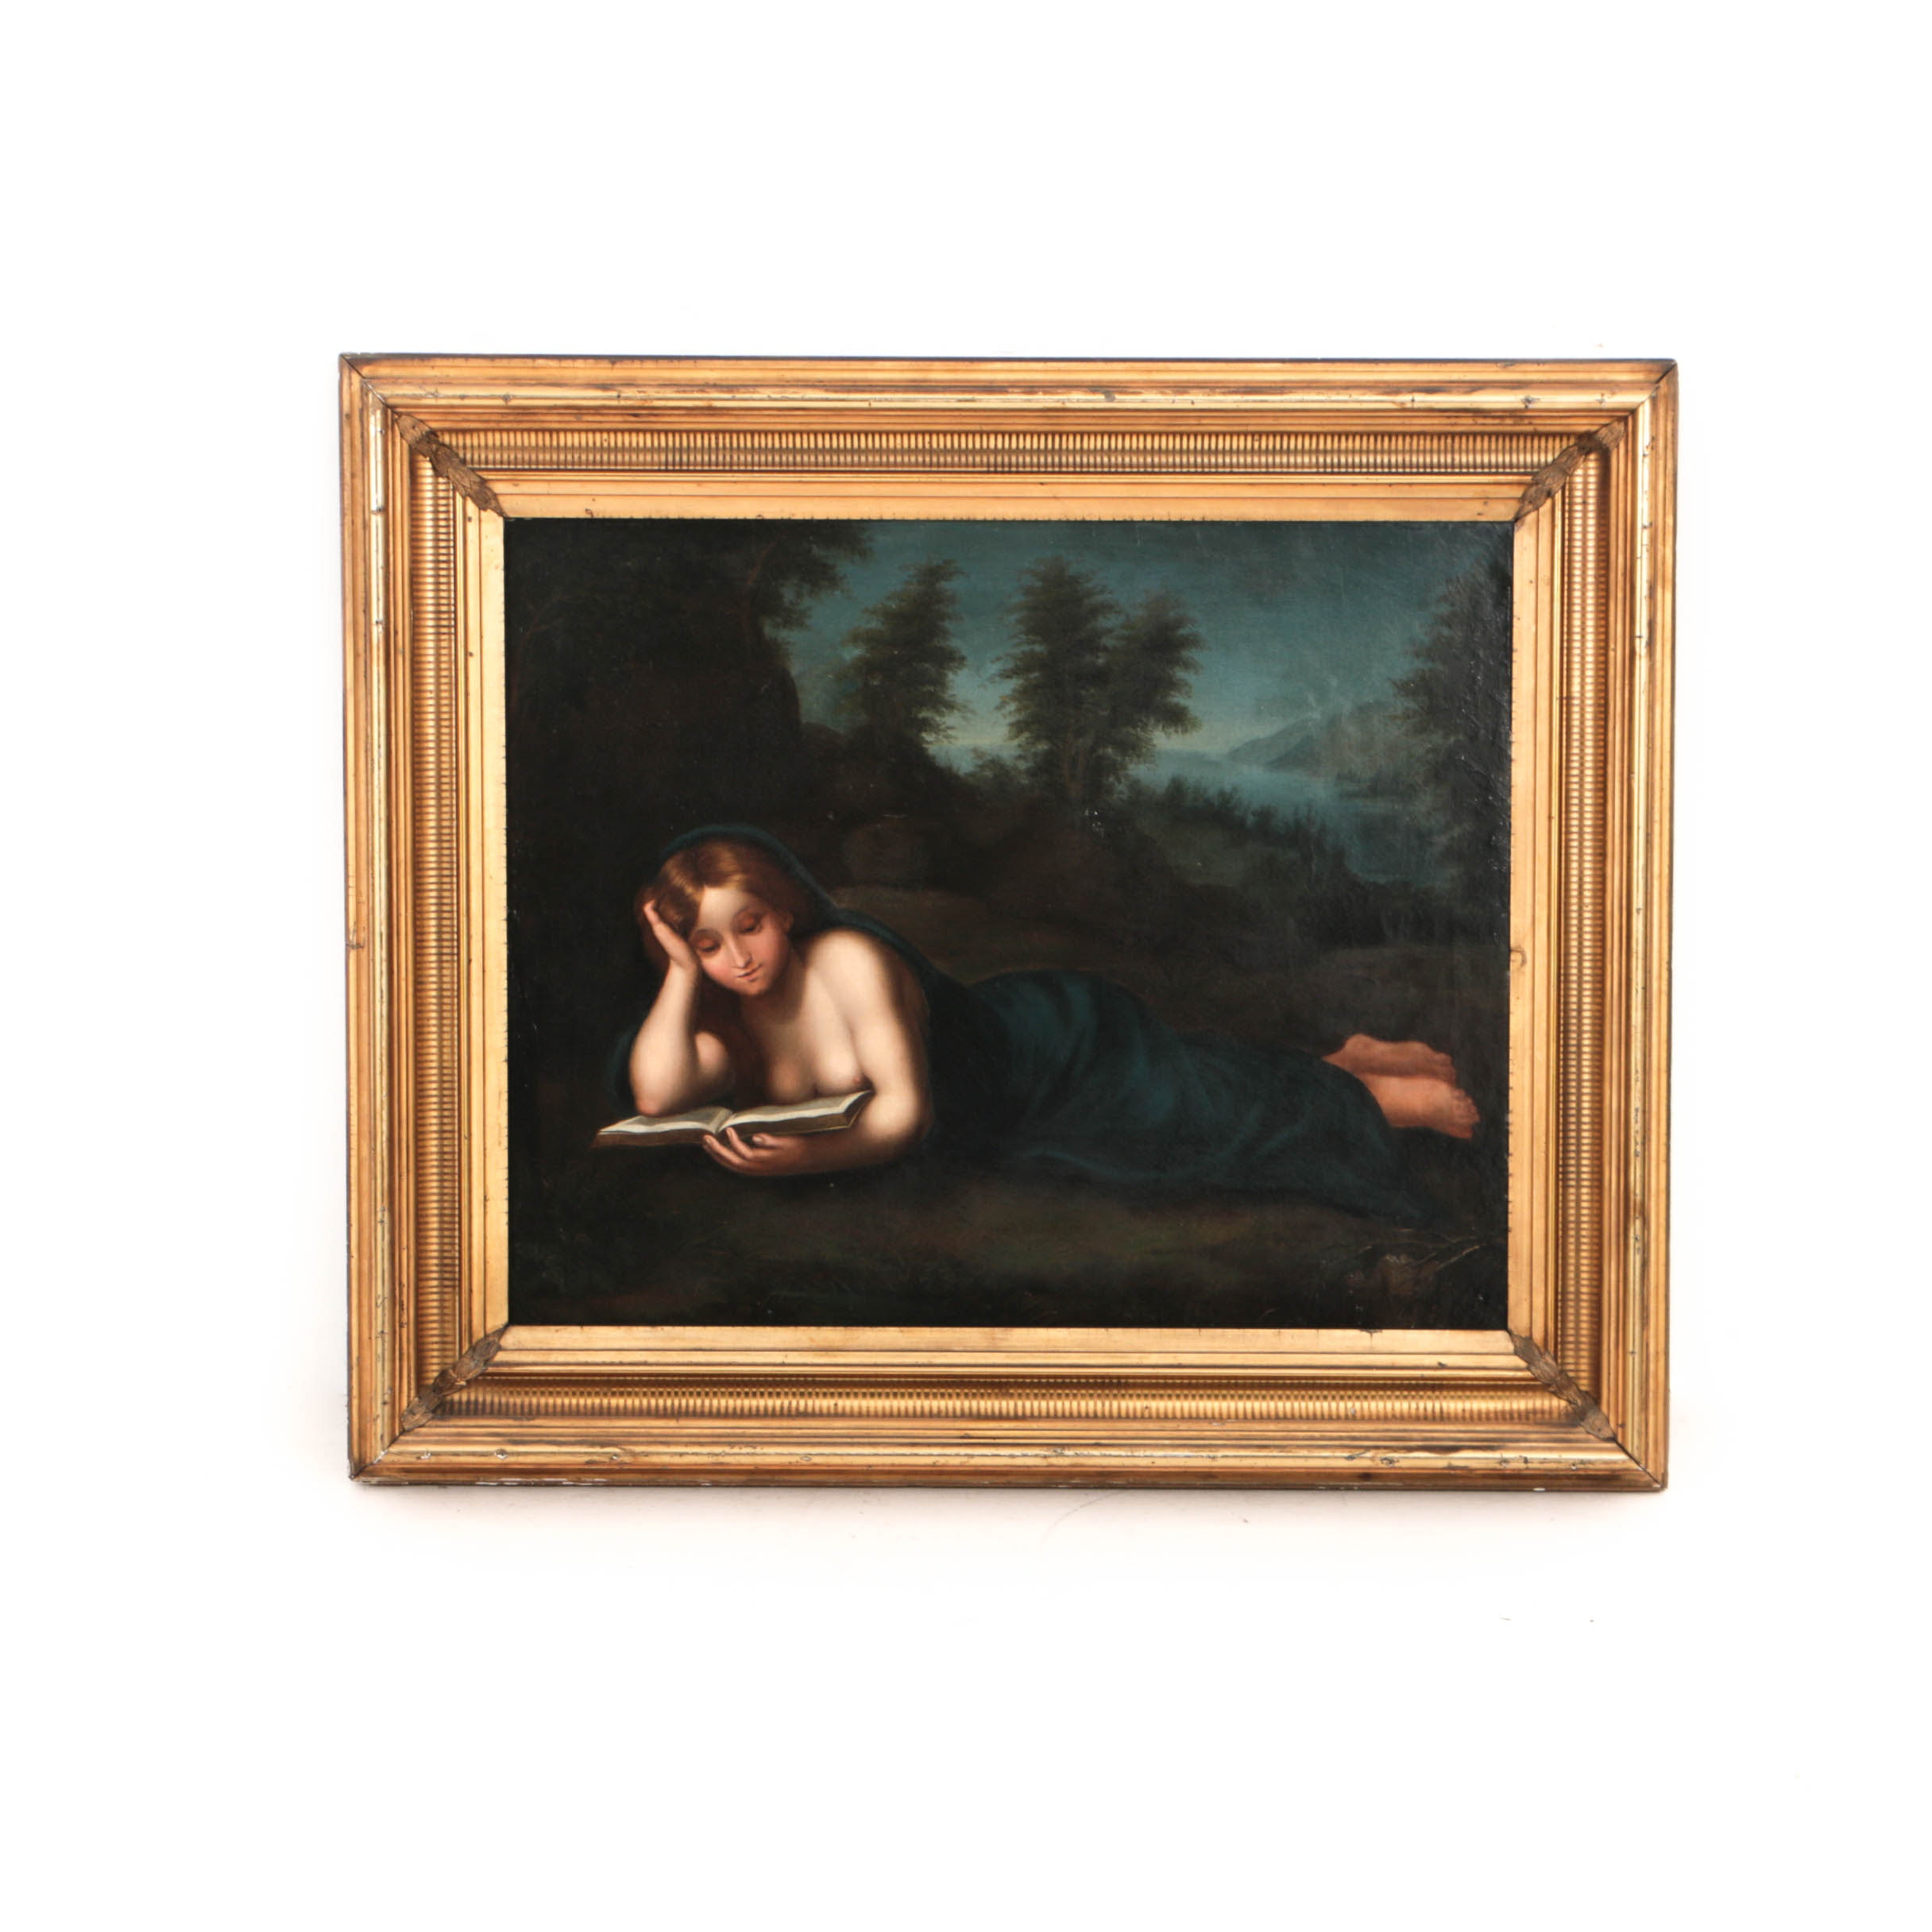 19th Century Oil Painting on Canvas of Reclining Neoclassical Figure